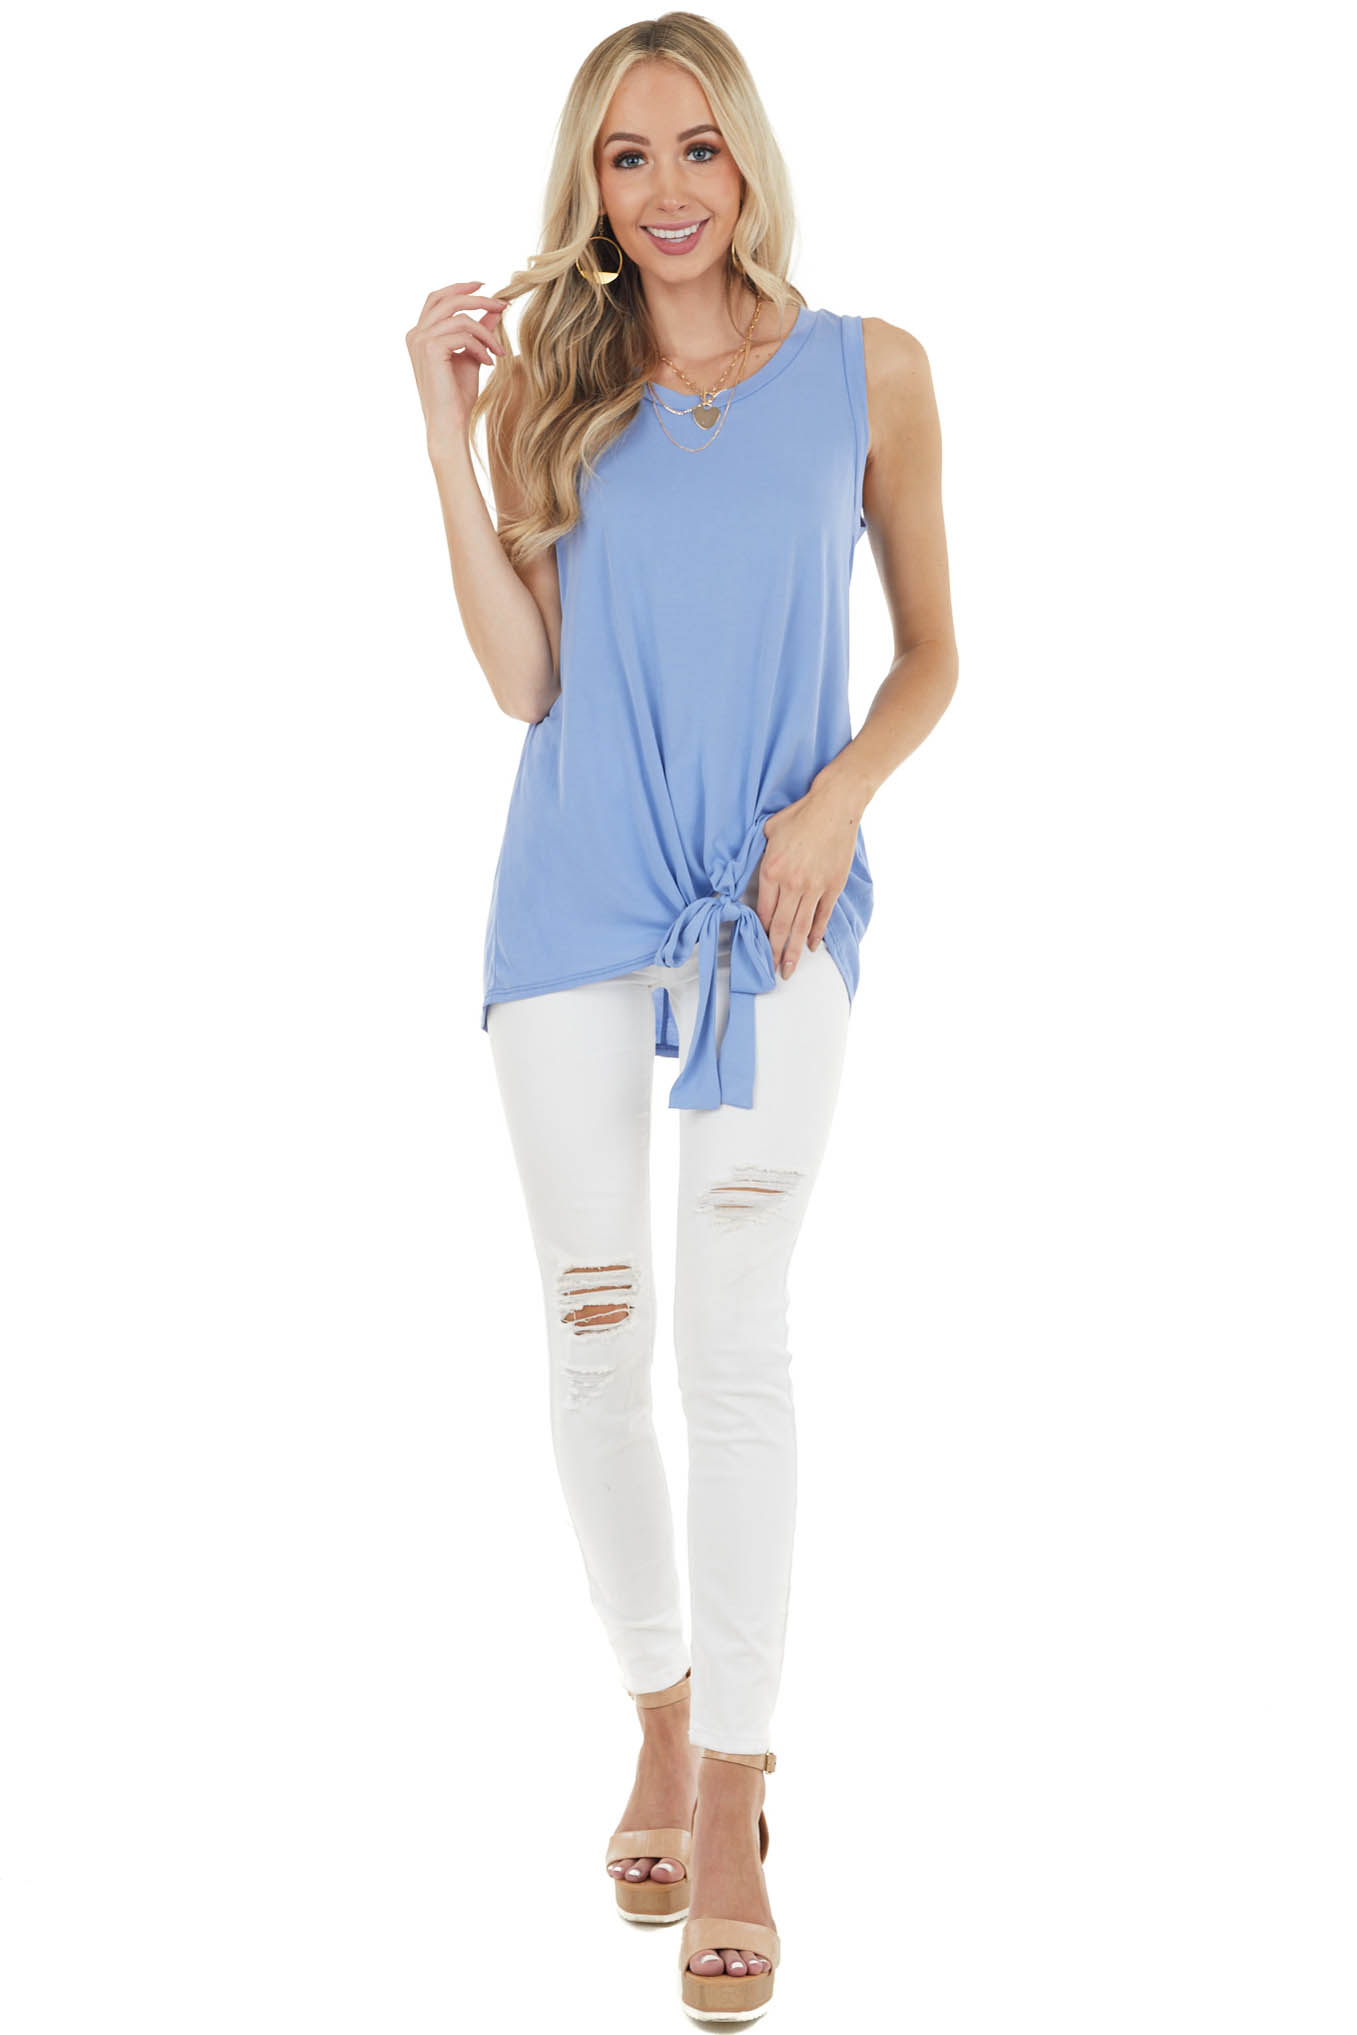 Dusty Blue Sleeveless Knit Top with Front Tie Detail